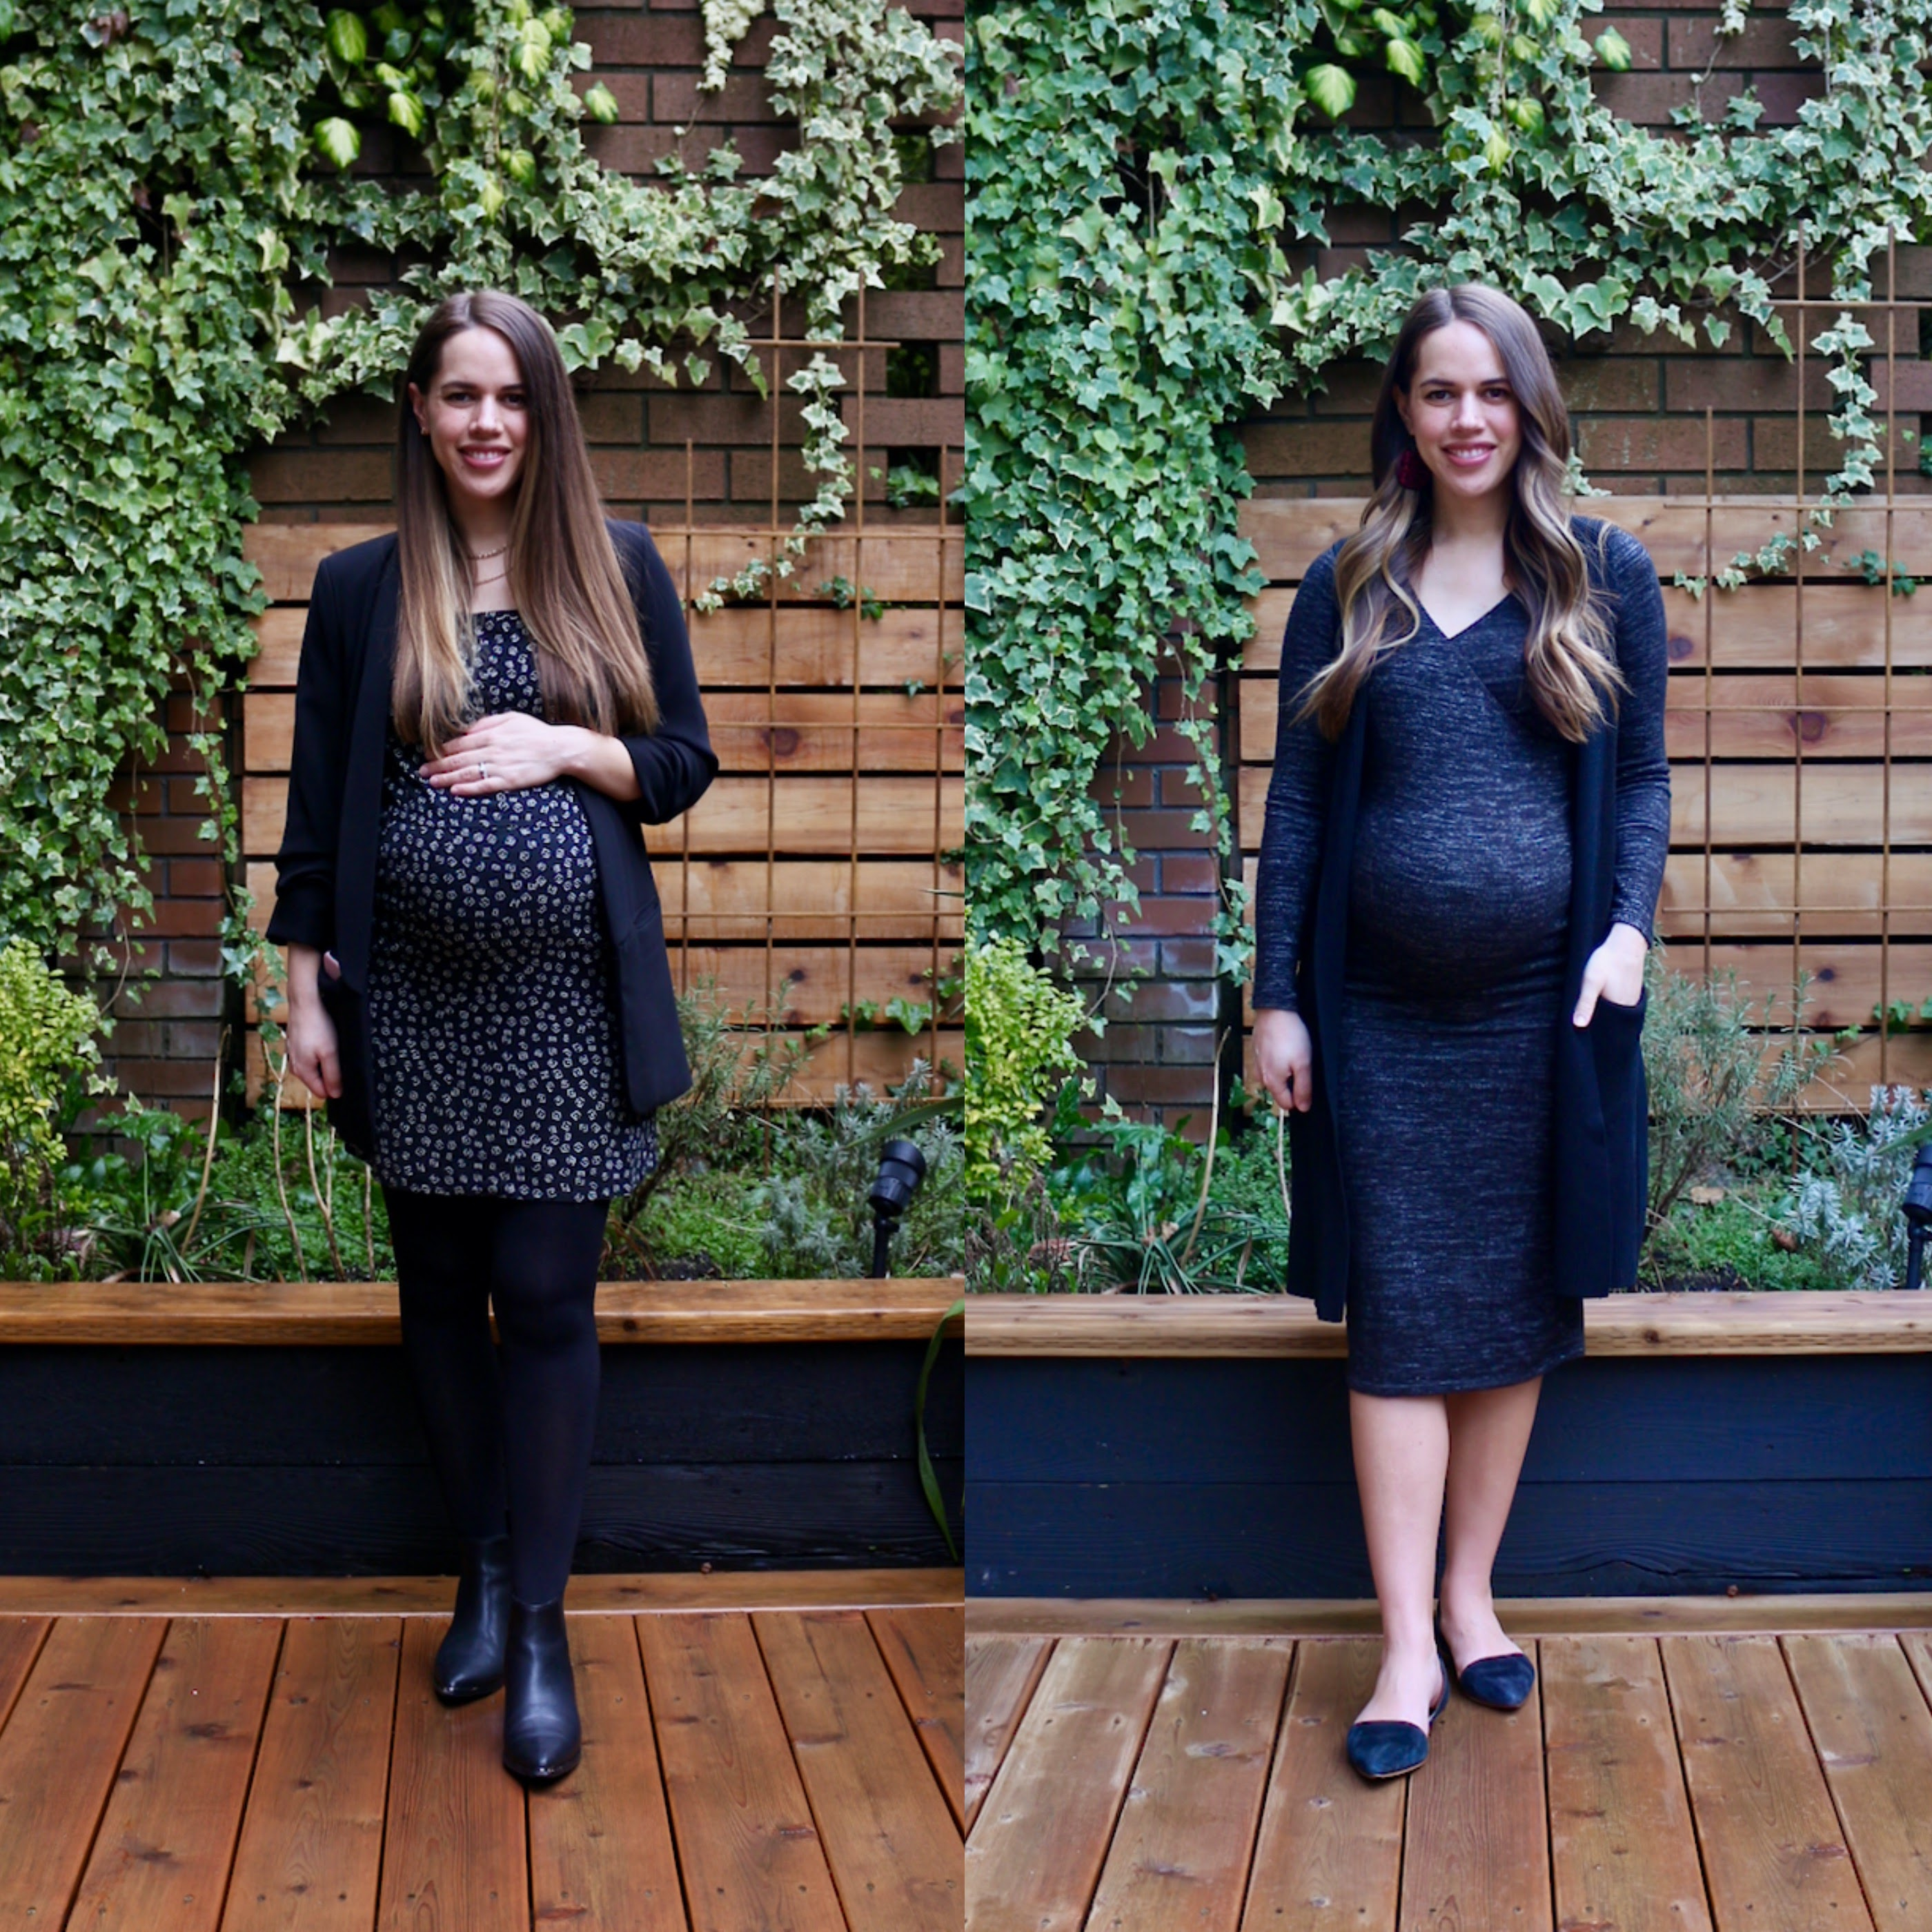 Jules in Flats - What I Wore to Work in February (Business Casual Workwear on a Budget) Week 4